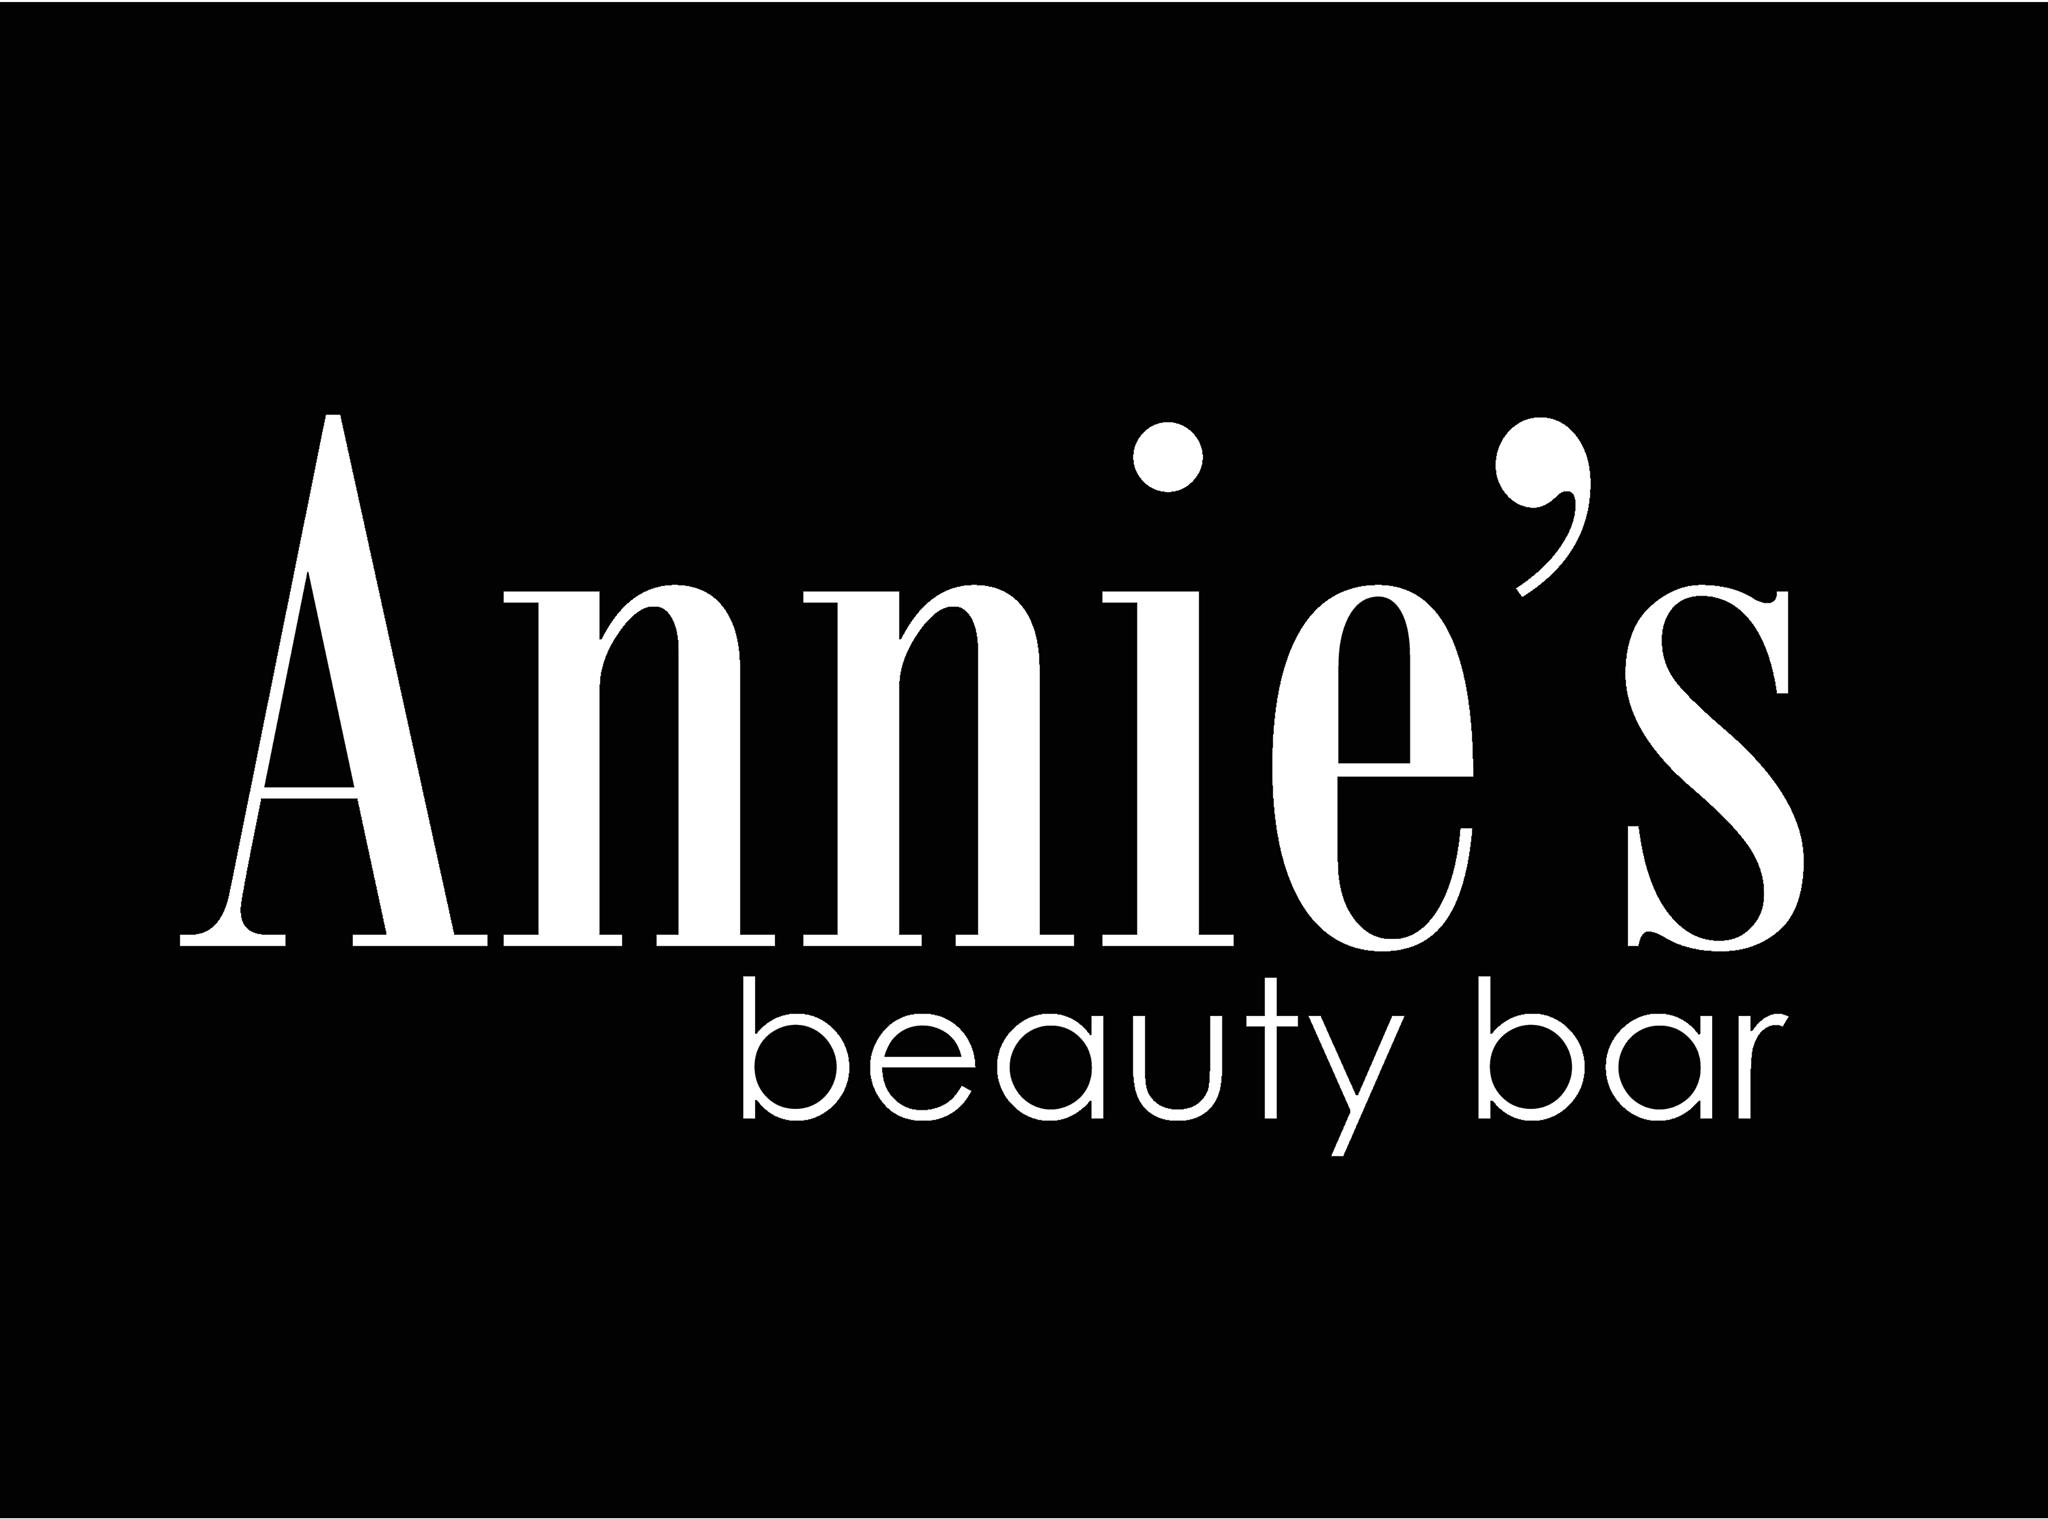 Annie's beauty bar Logo